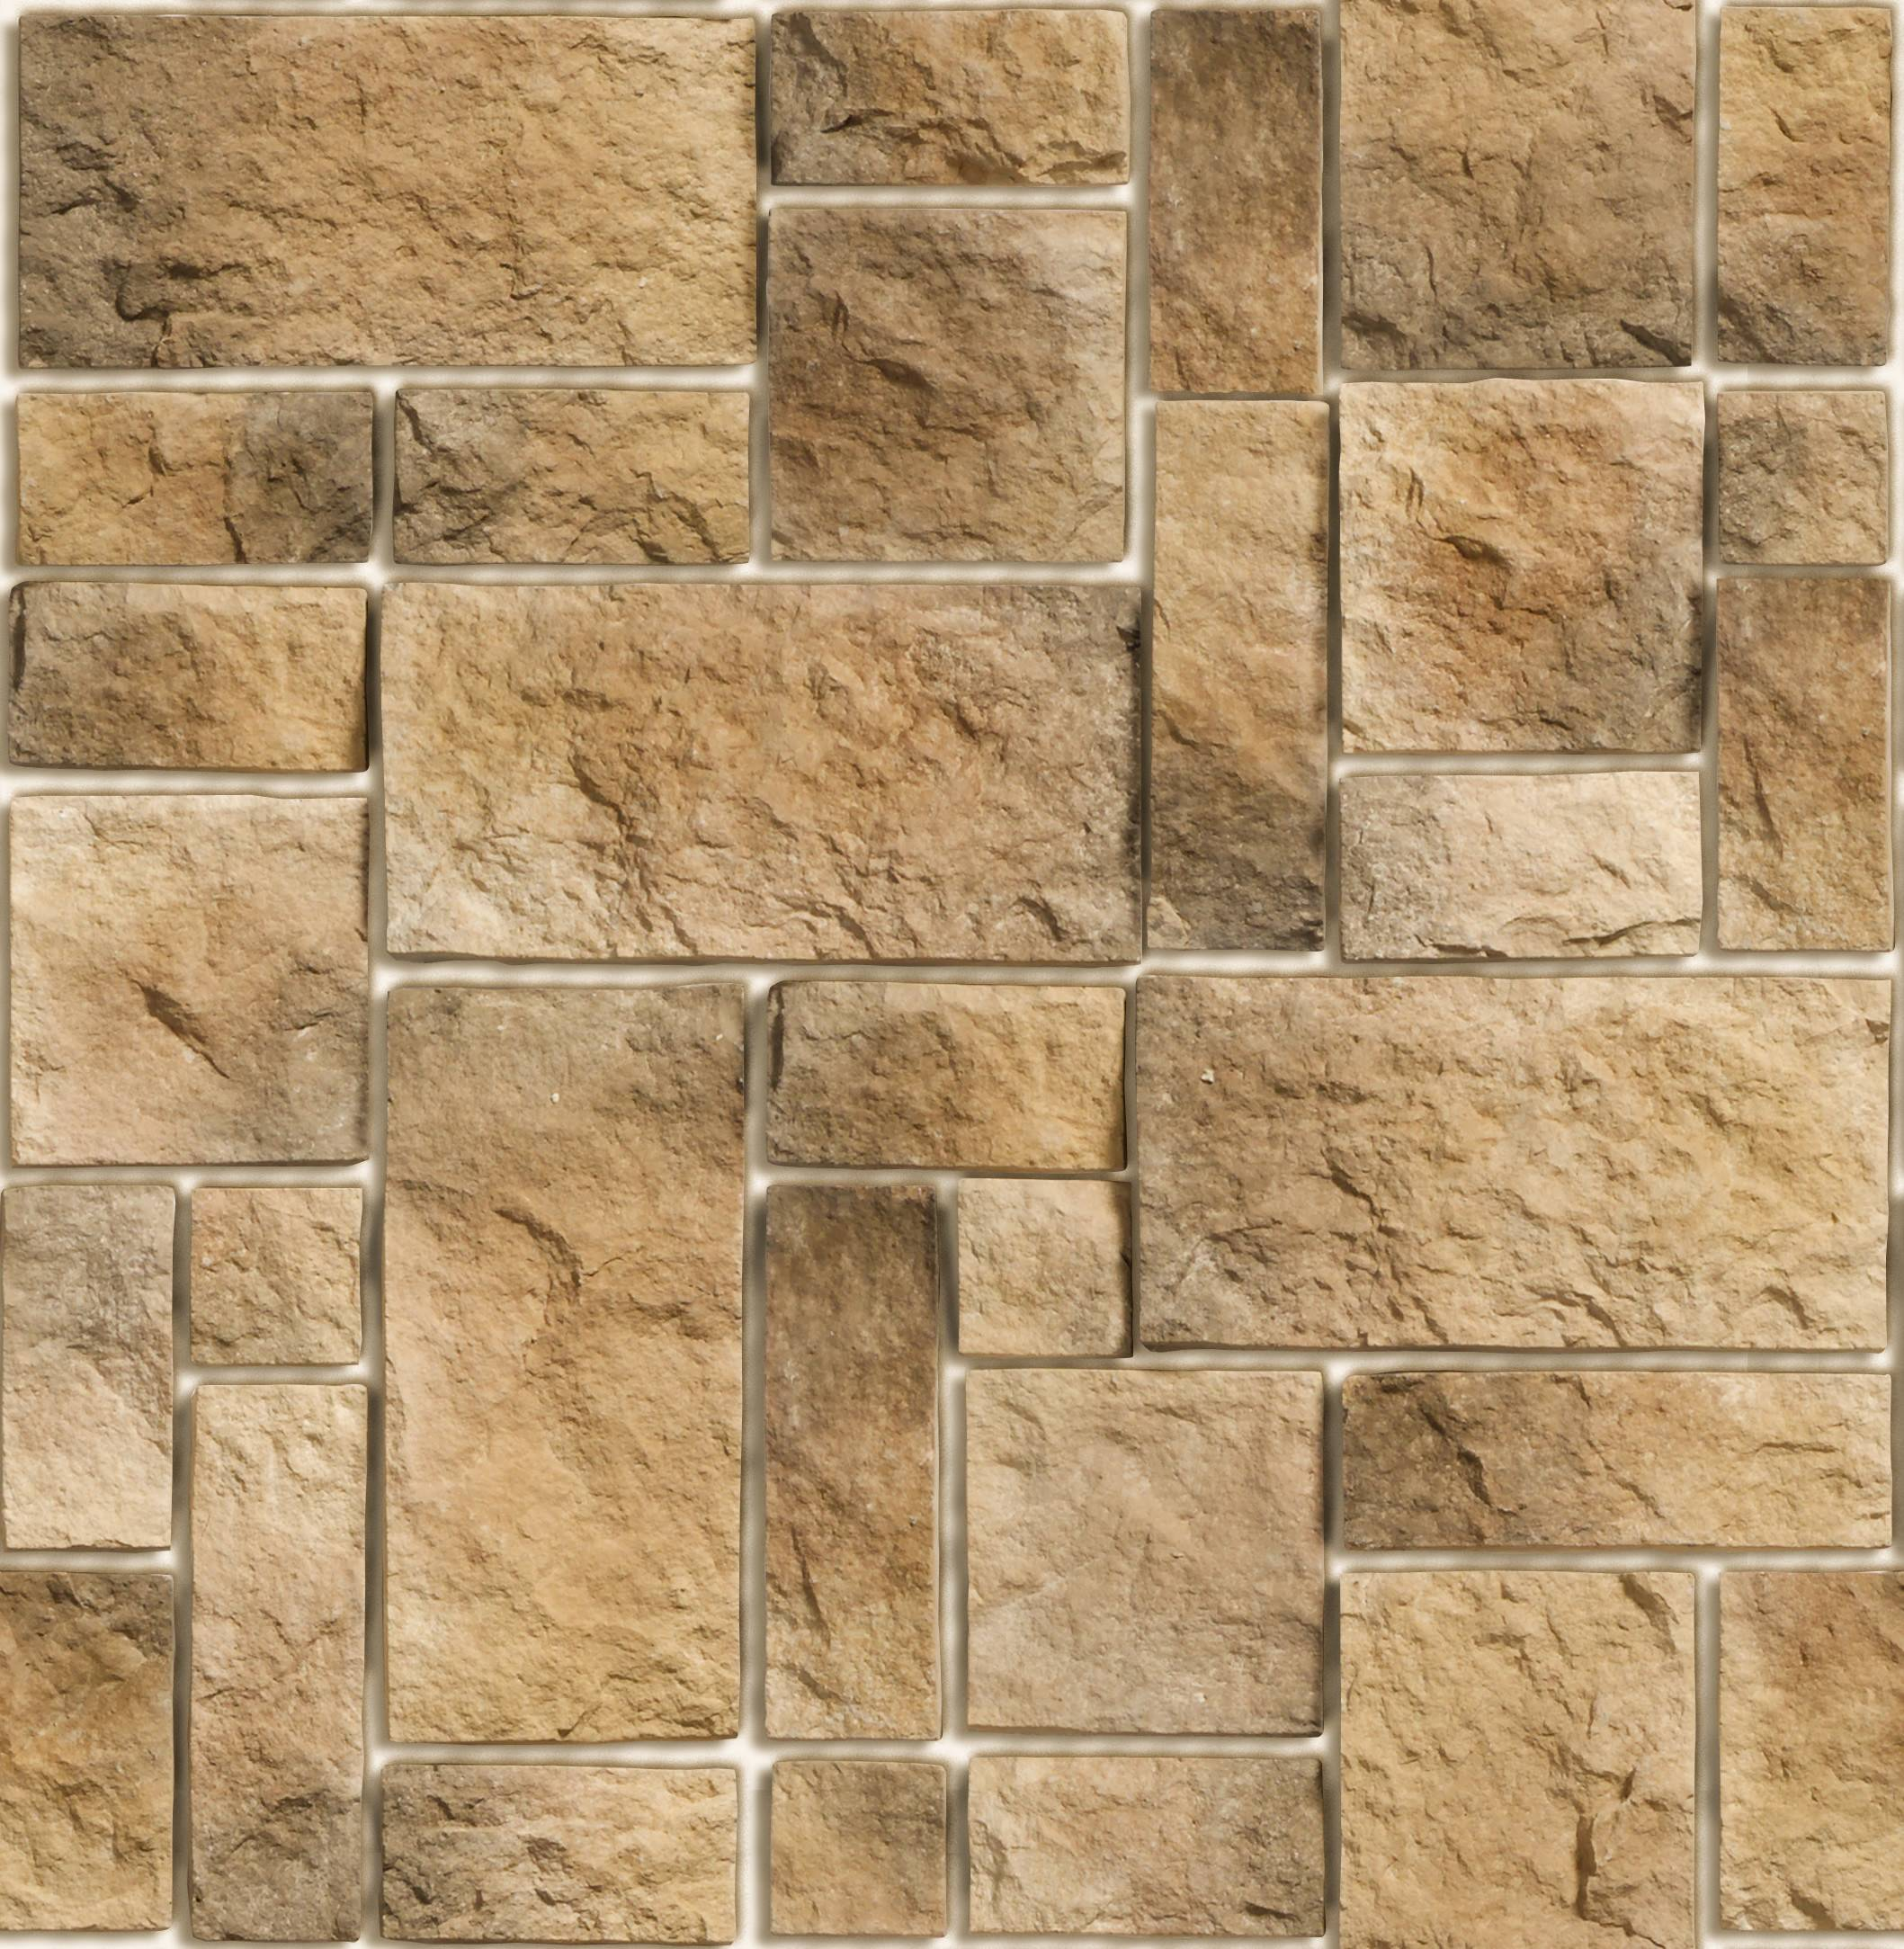 Texture Stone Hewn Tile Wall